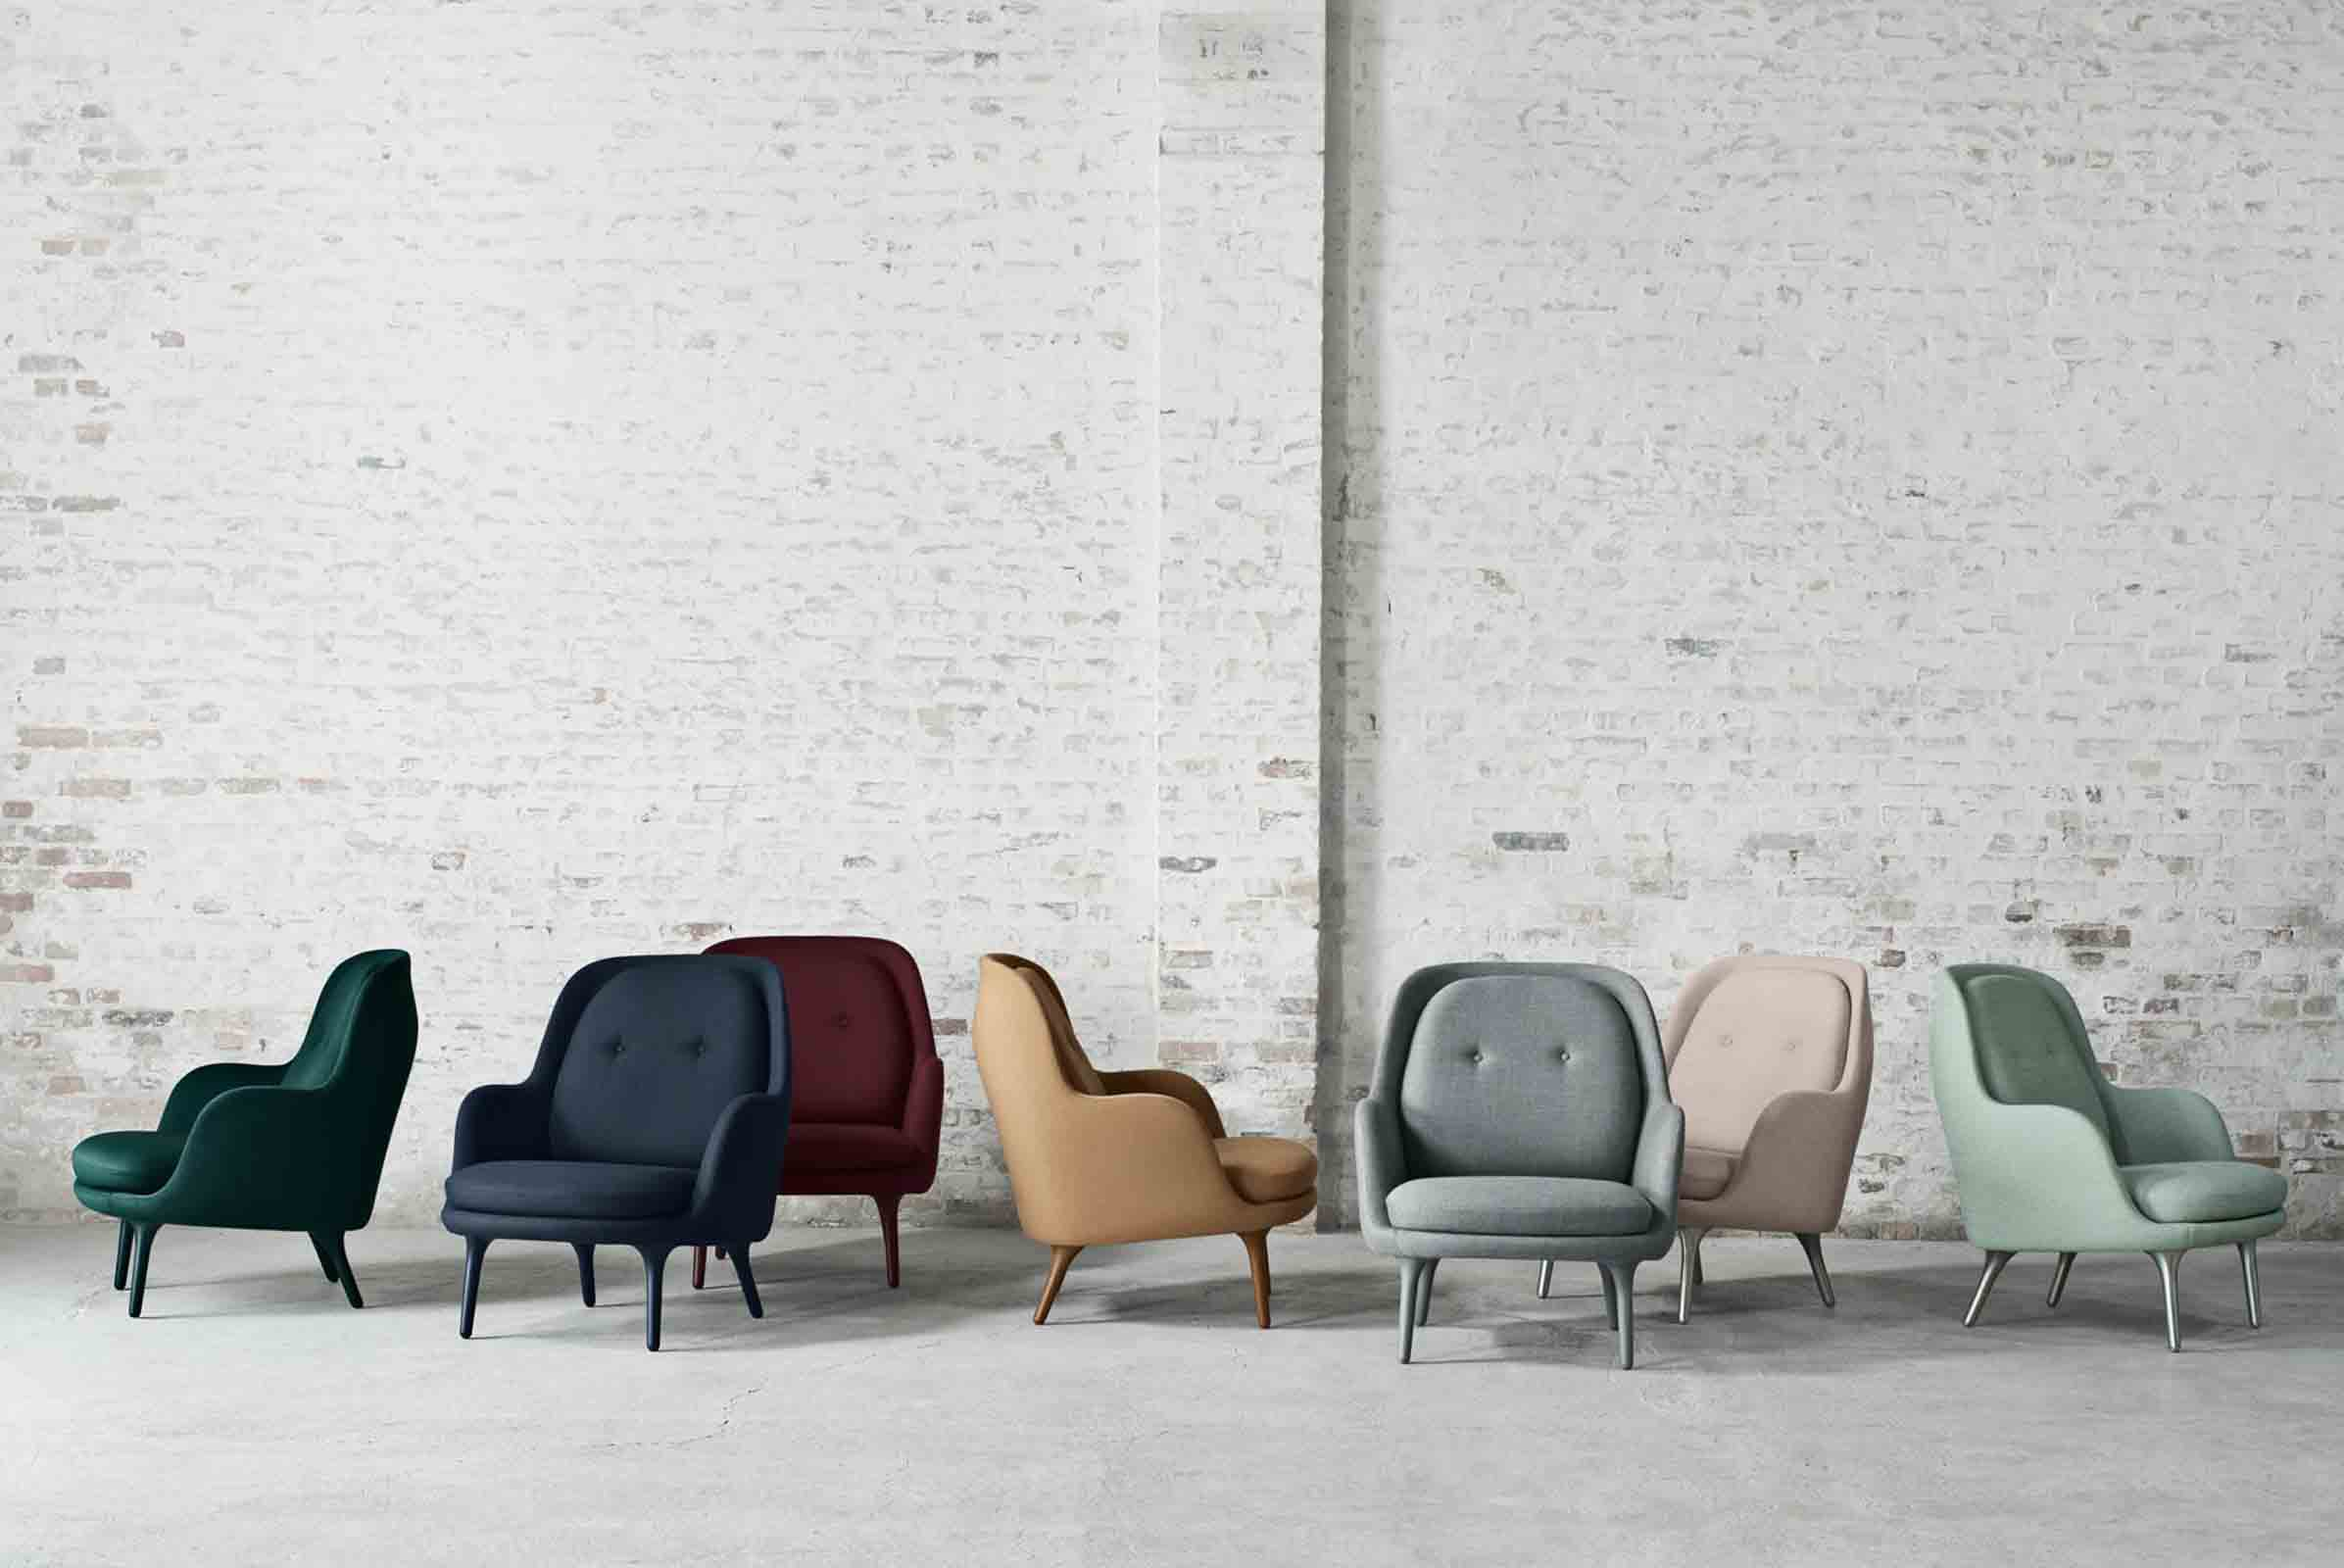 'Fri' chair in multiple colours, designed by  Jaime Hayon for Fritz Hansen